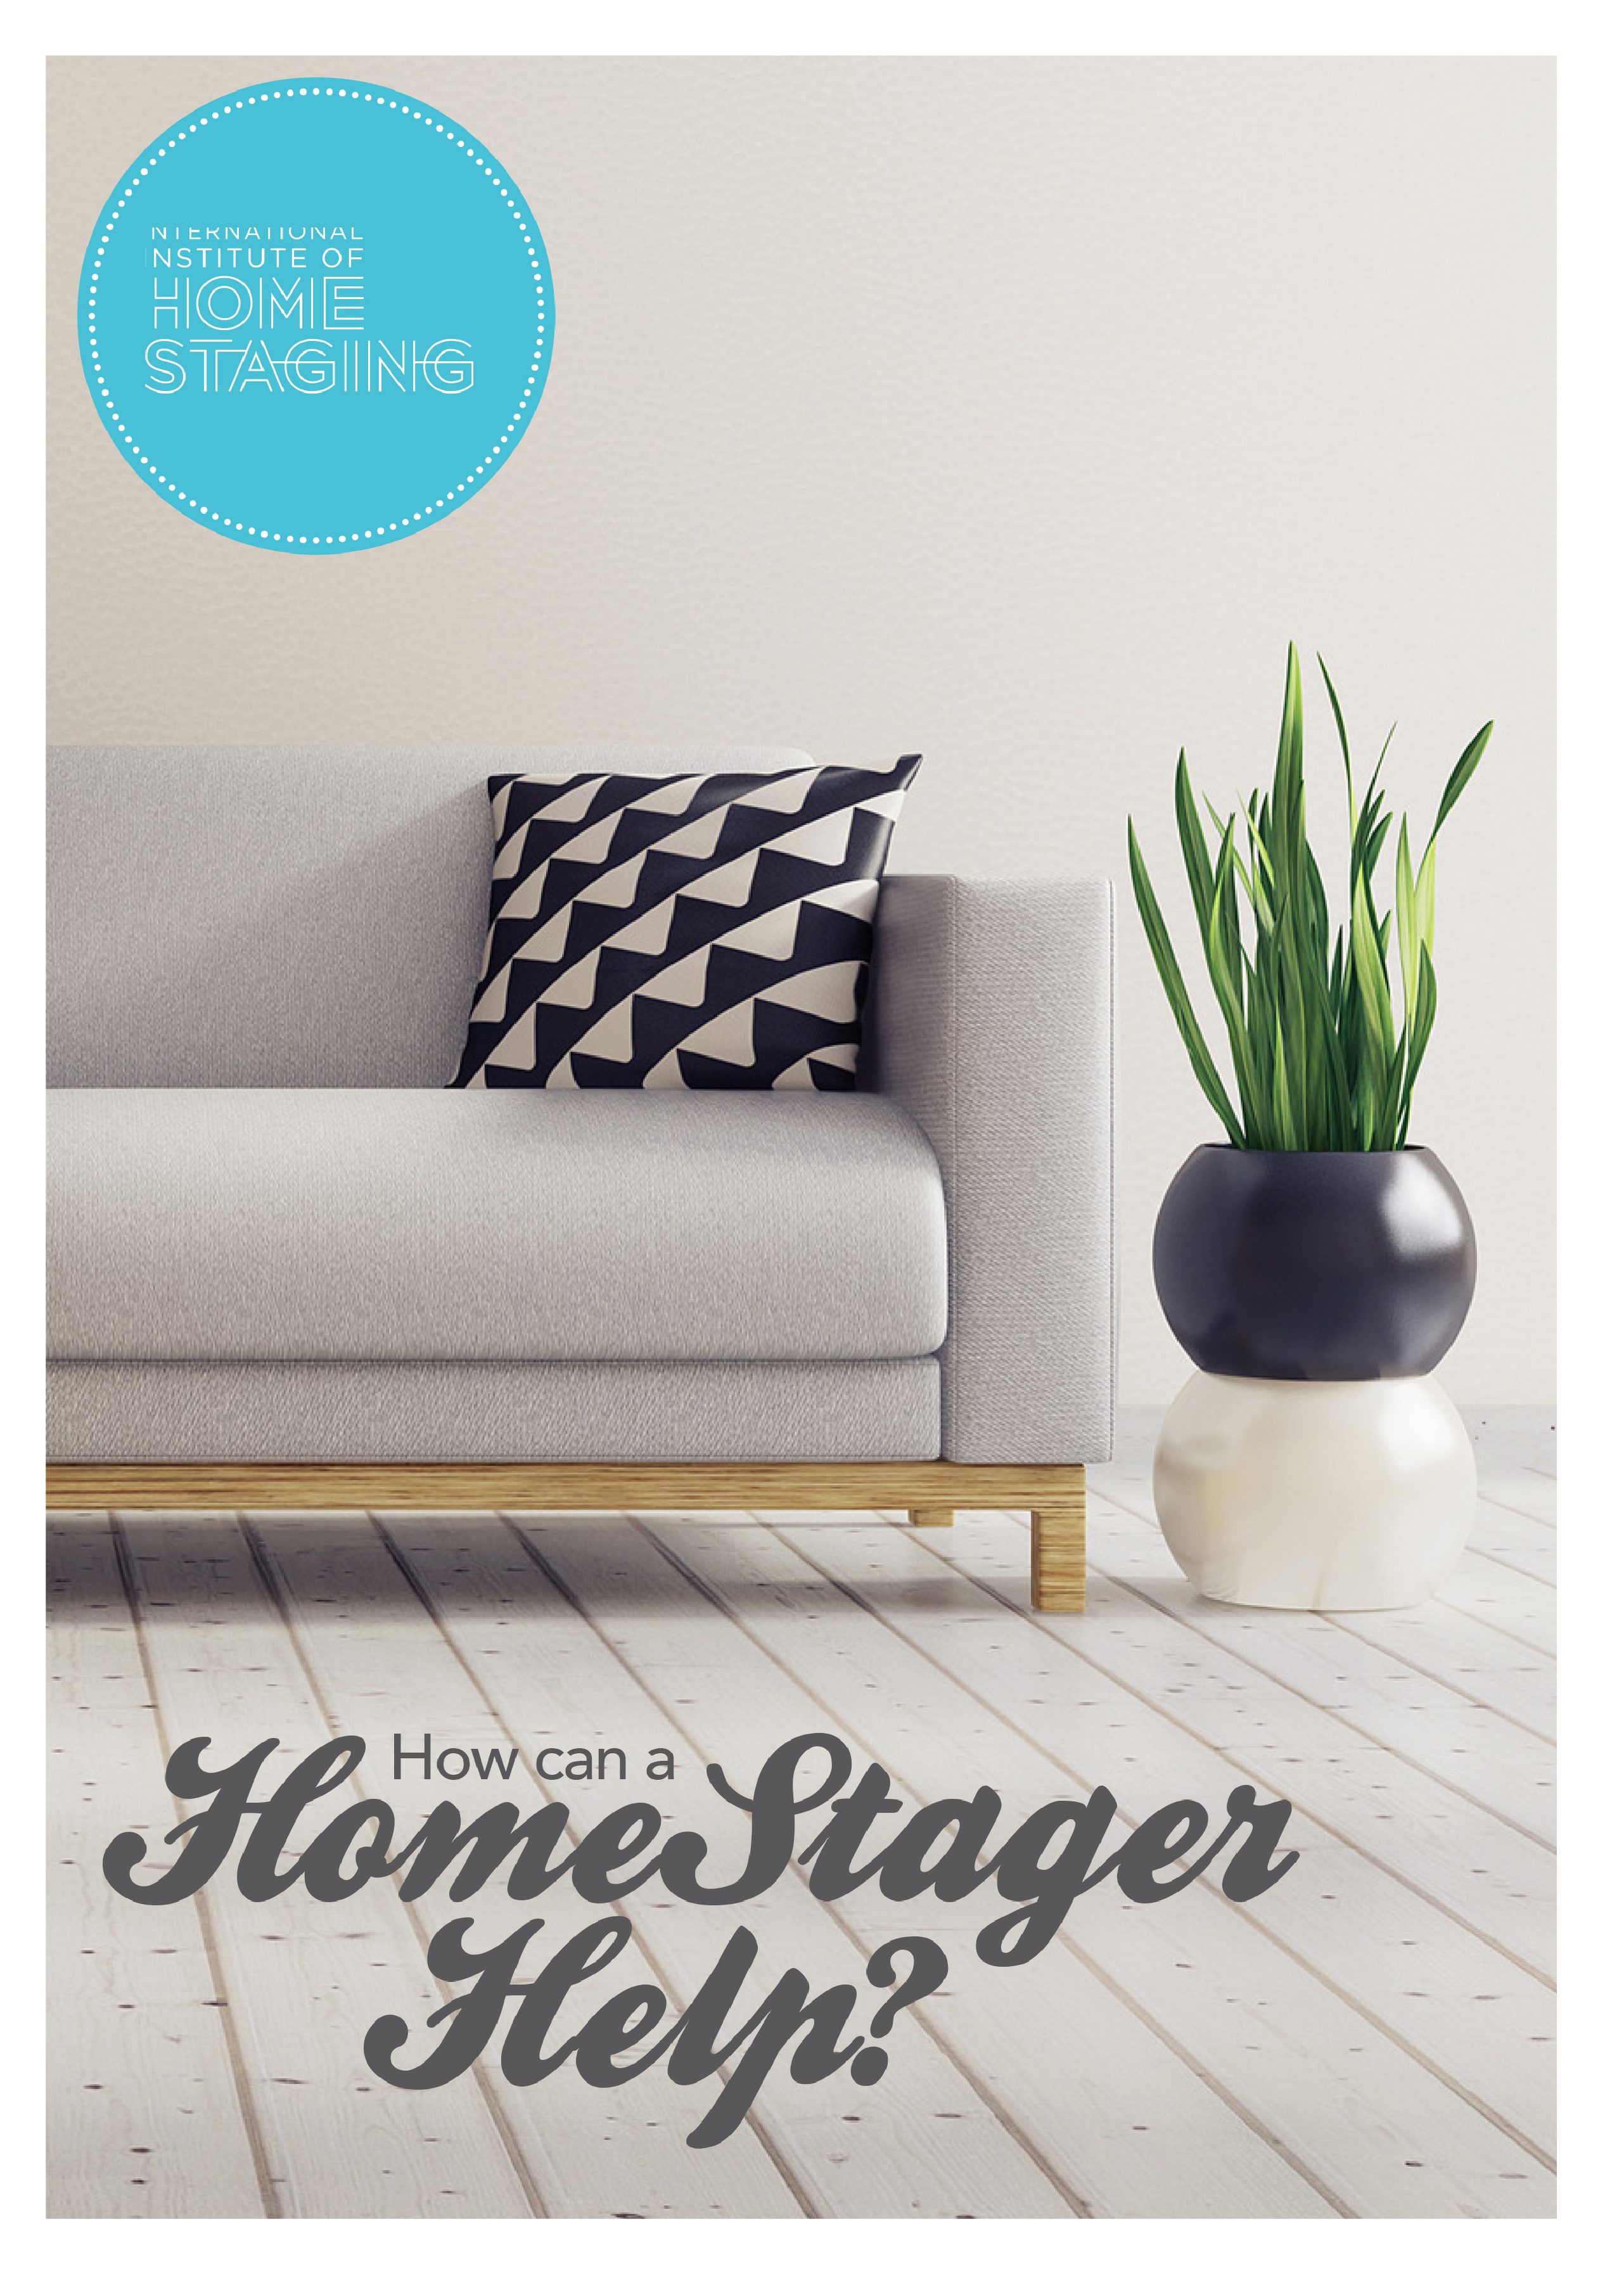 How Can a Home Stager Help?